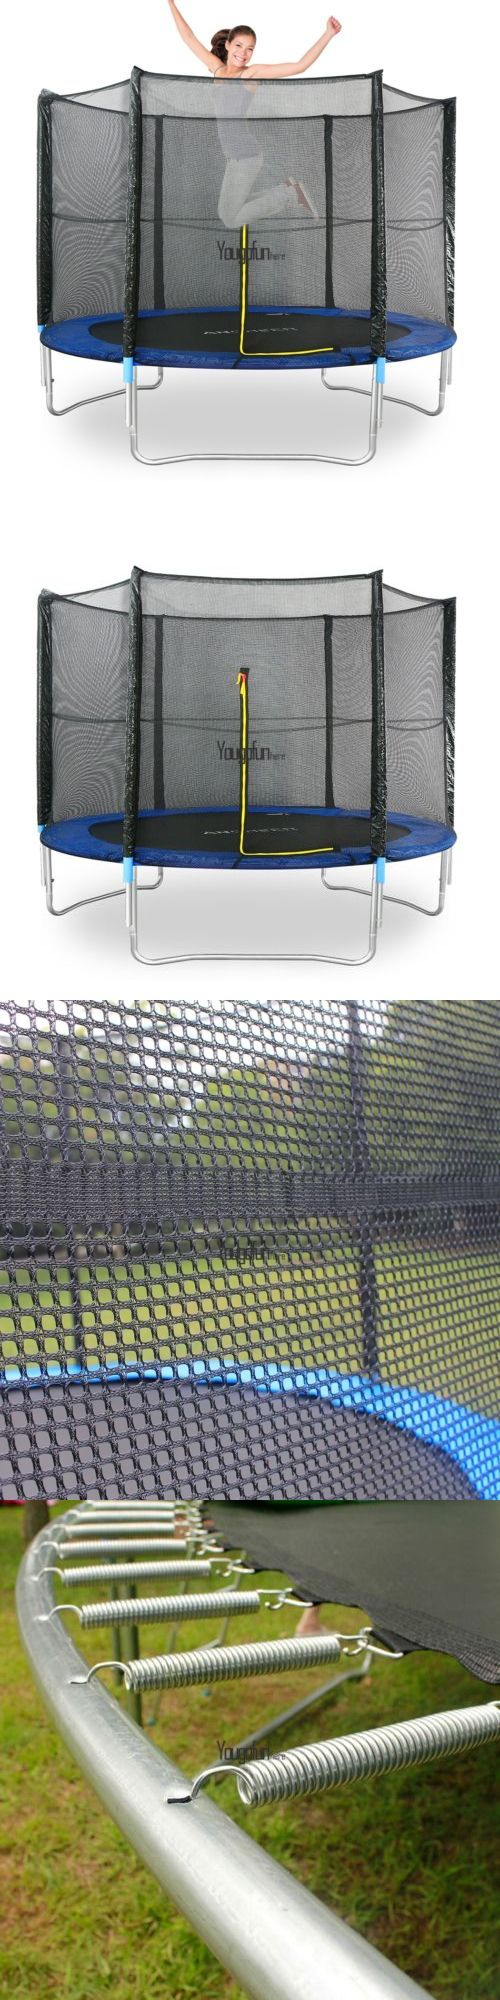 Trampolines 57275: Round 10Ft Trampoline Safety Enclosure Bounce Jump Net Spring Pad Ladder Garden BUY IT NOW ONLY: $169.97